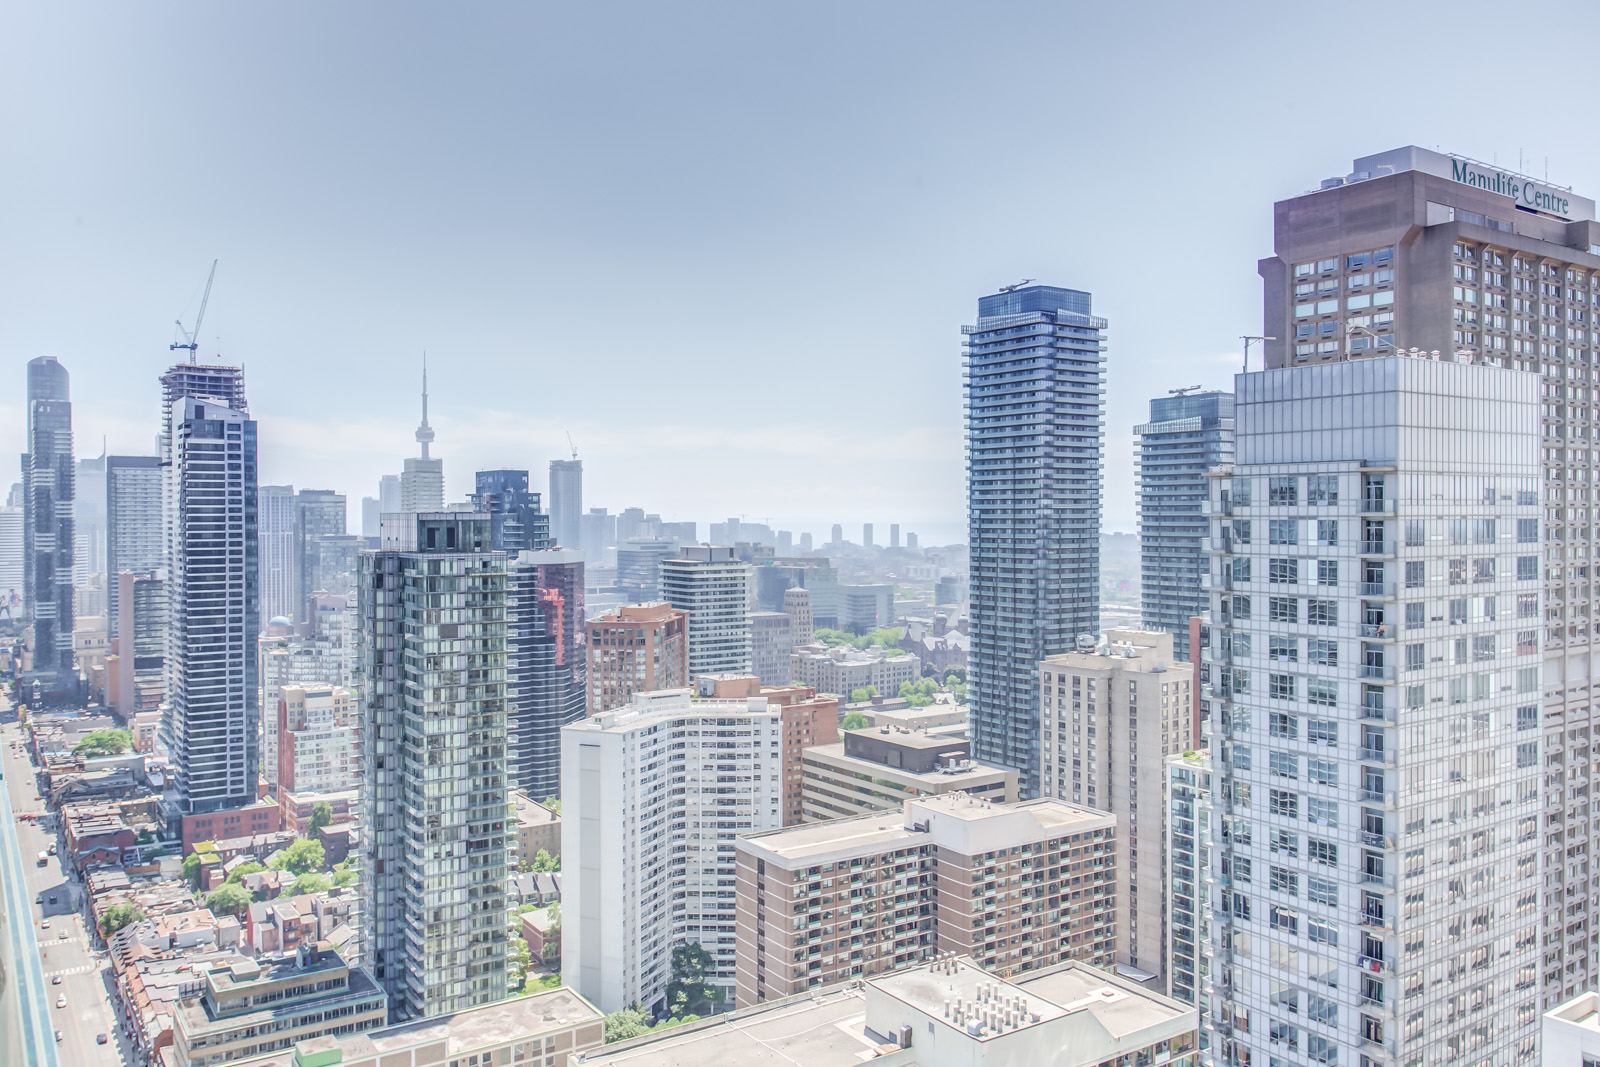 Ariel view of Yonge and Bloor from balcony of 1 Bloor St E Unit 3408.